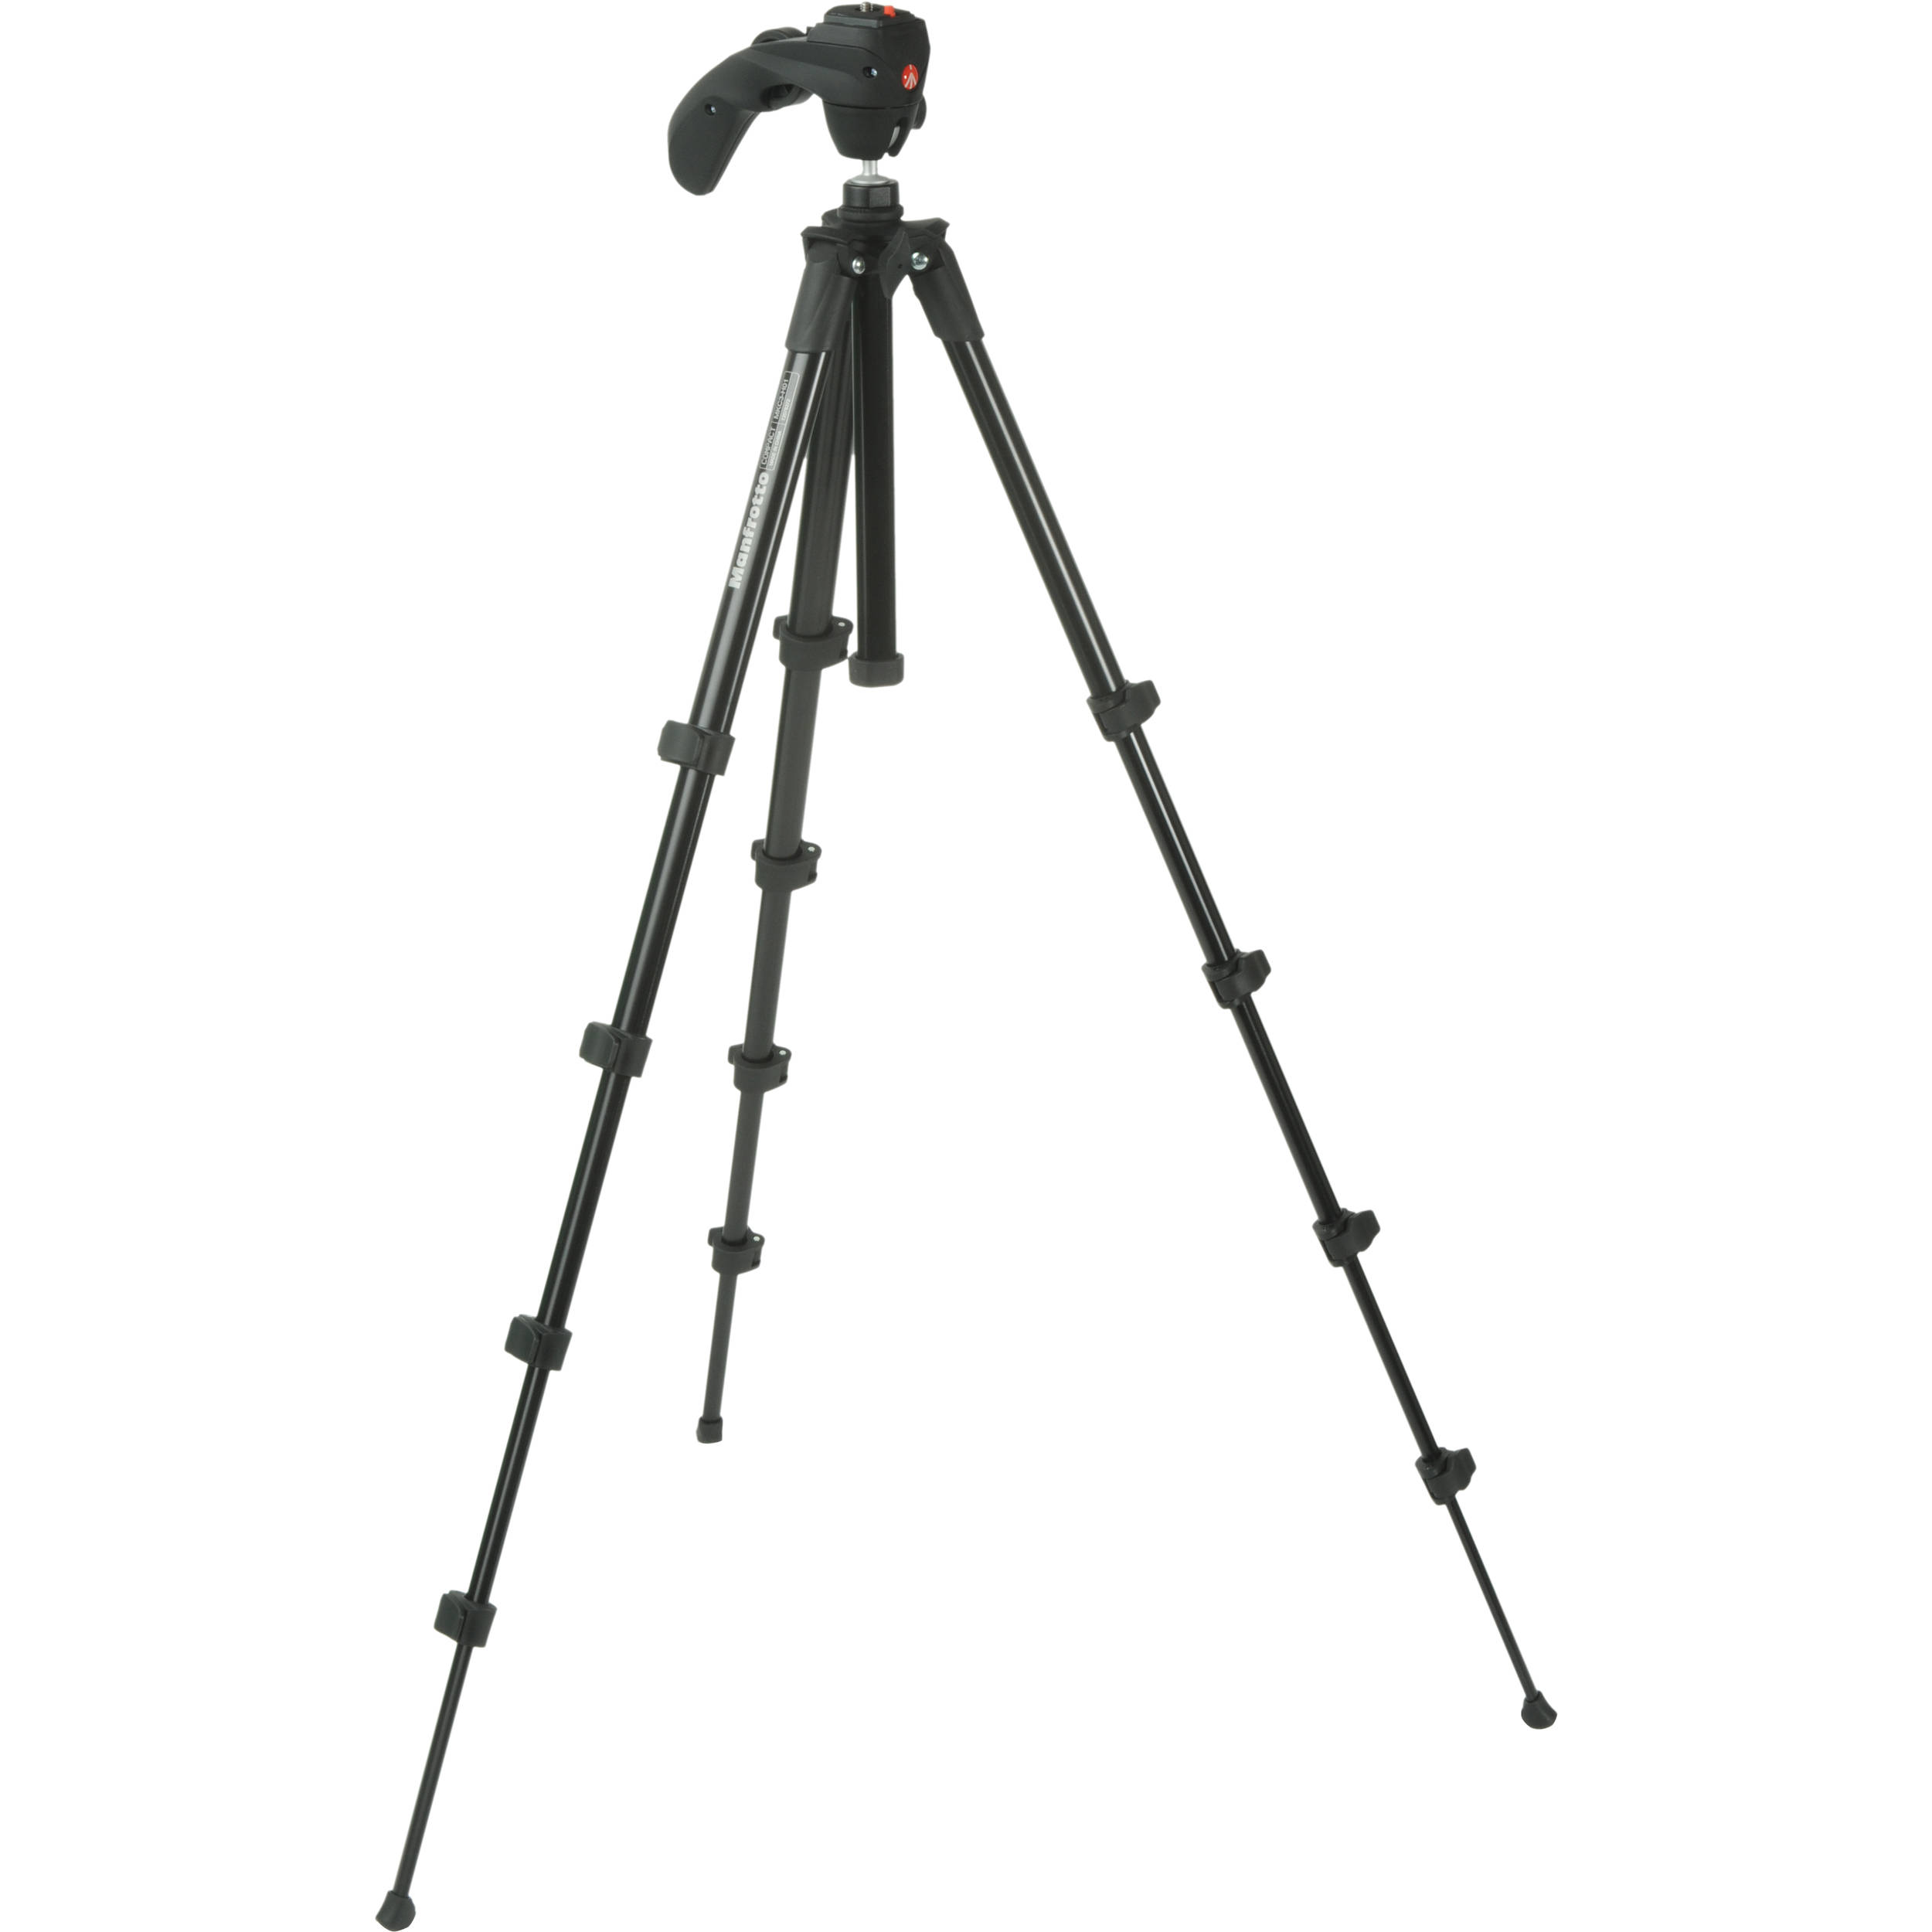 manfrotto_mkc3_h01m_mkc3_h01_compact_series_tripod_1014332.jpg